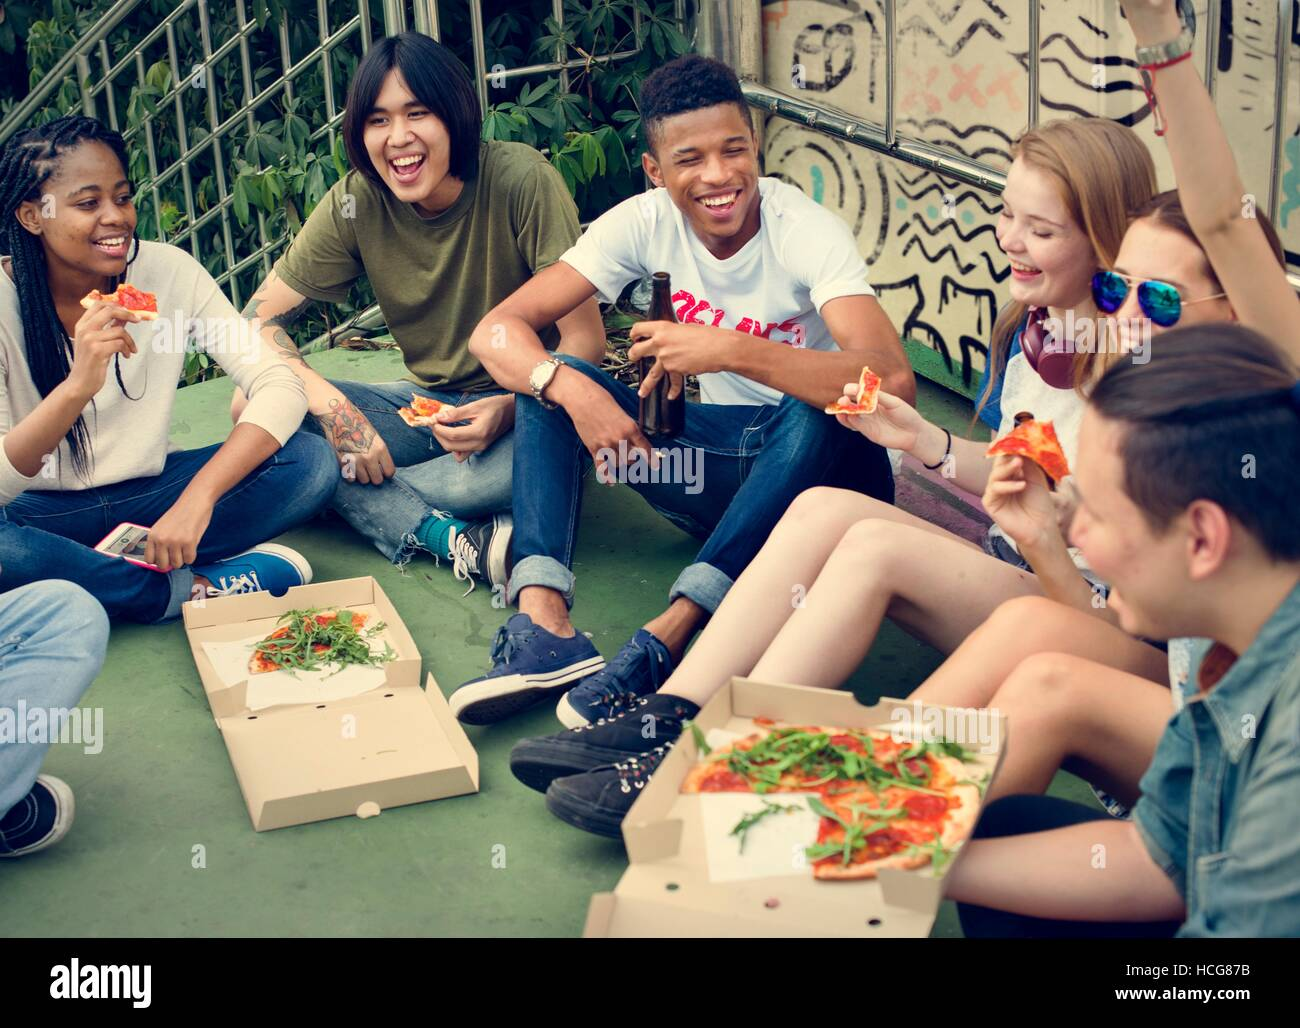 People Friendship Togetherness Eating Pizza Youth Culture Concept - Stock Image